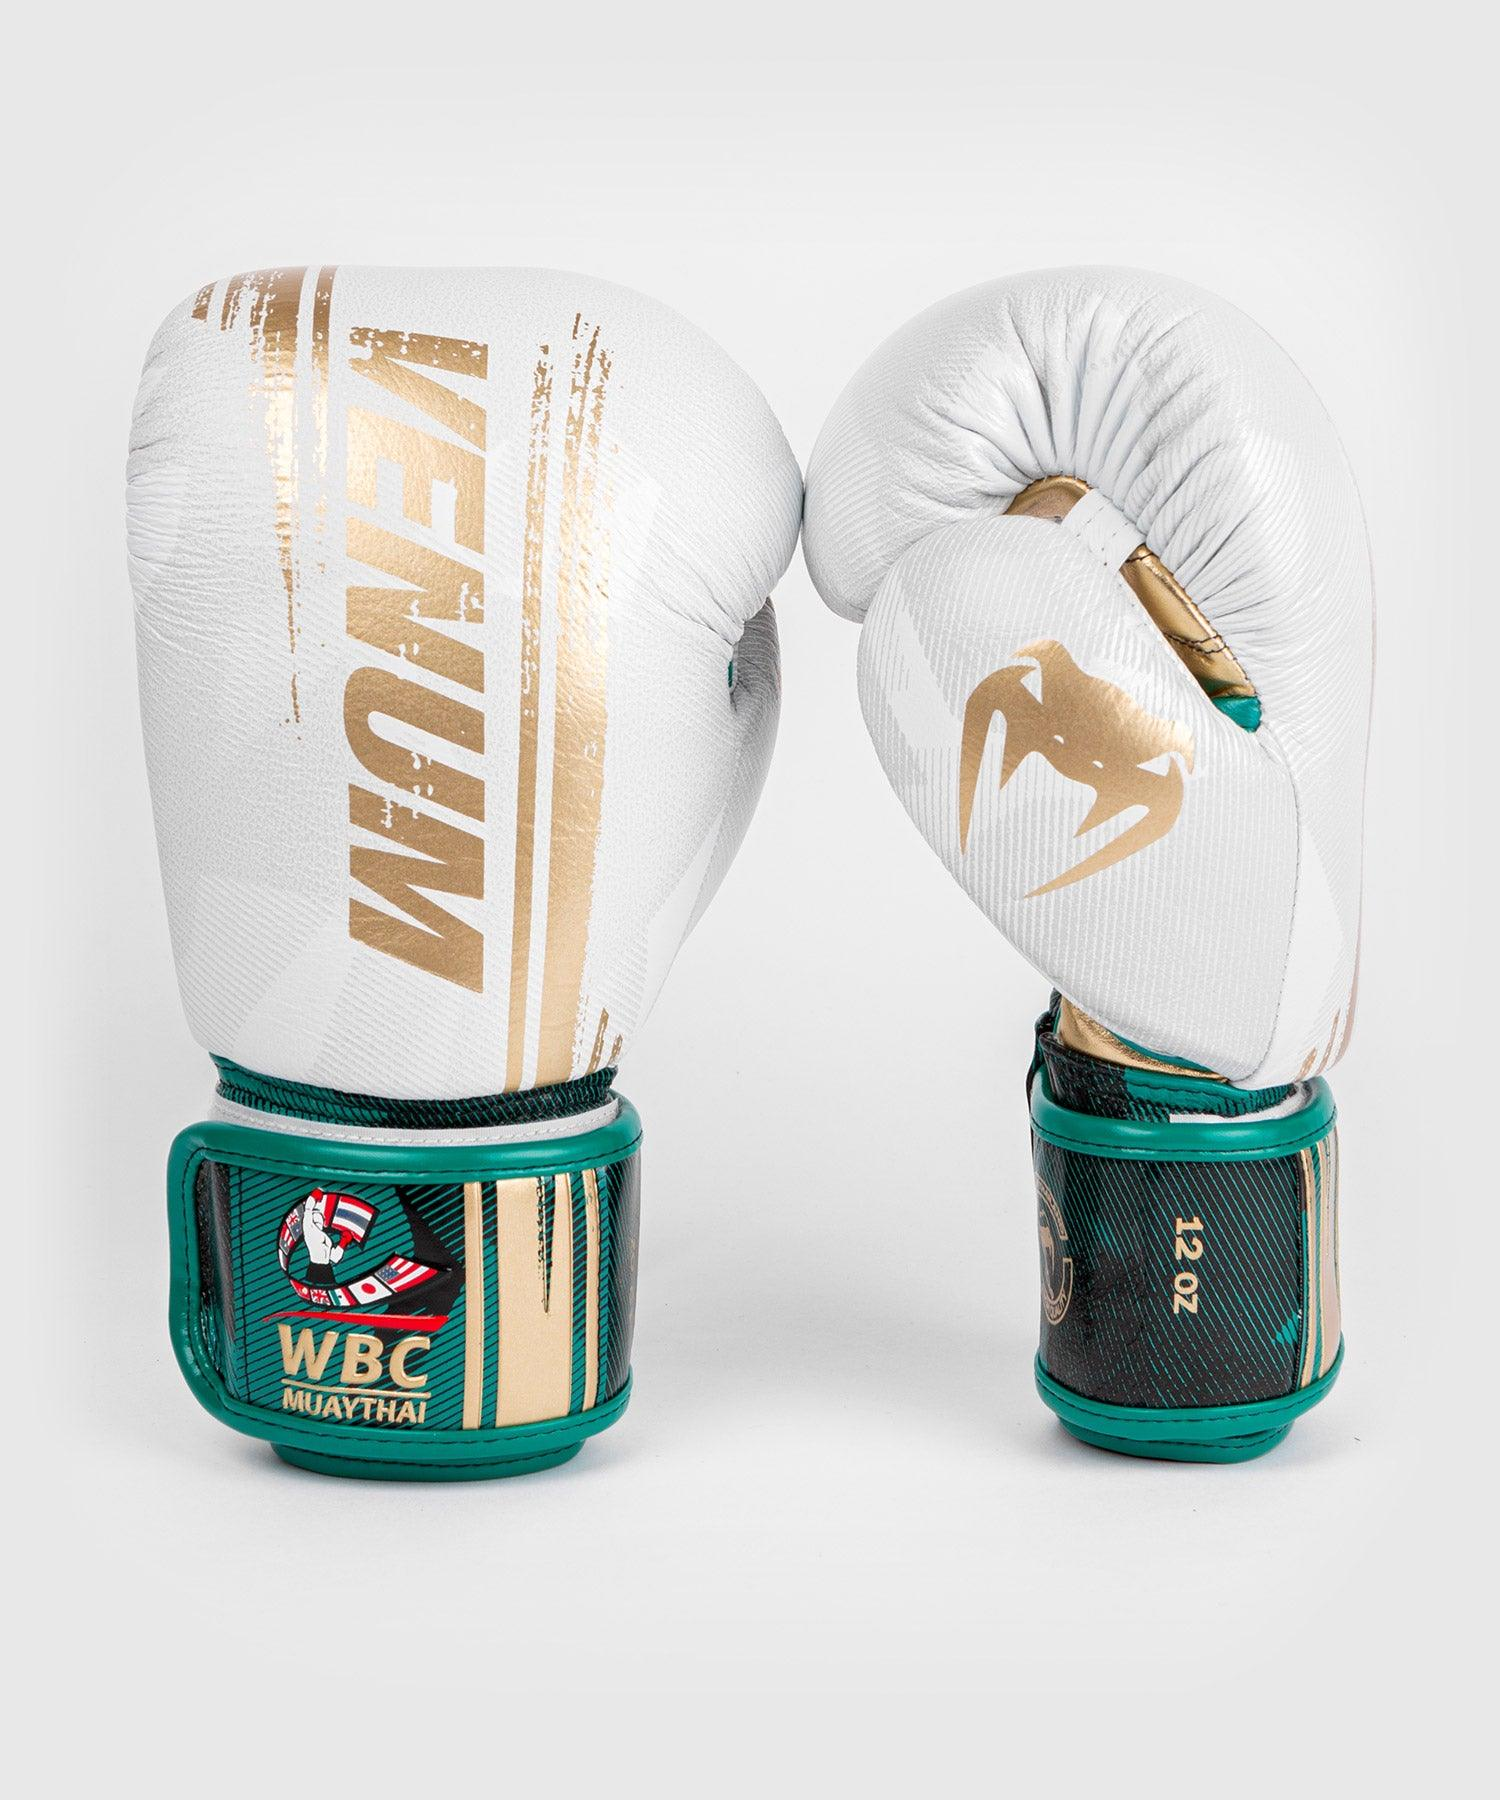 Venum WBC Muay Thai Boxing Gloves - White/Green - Picture 1